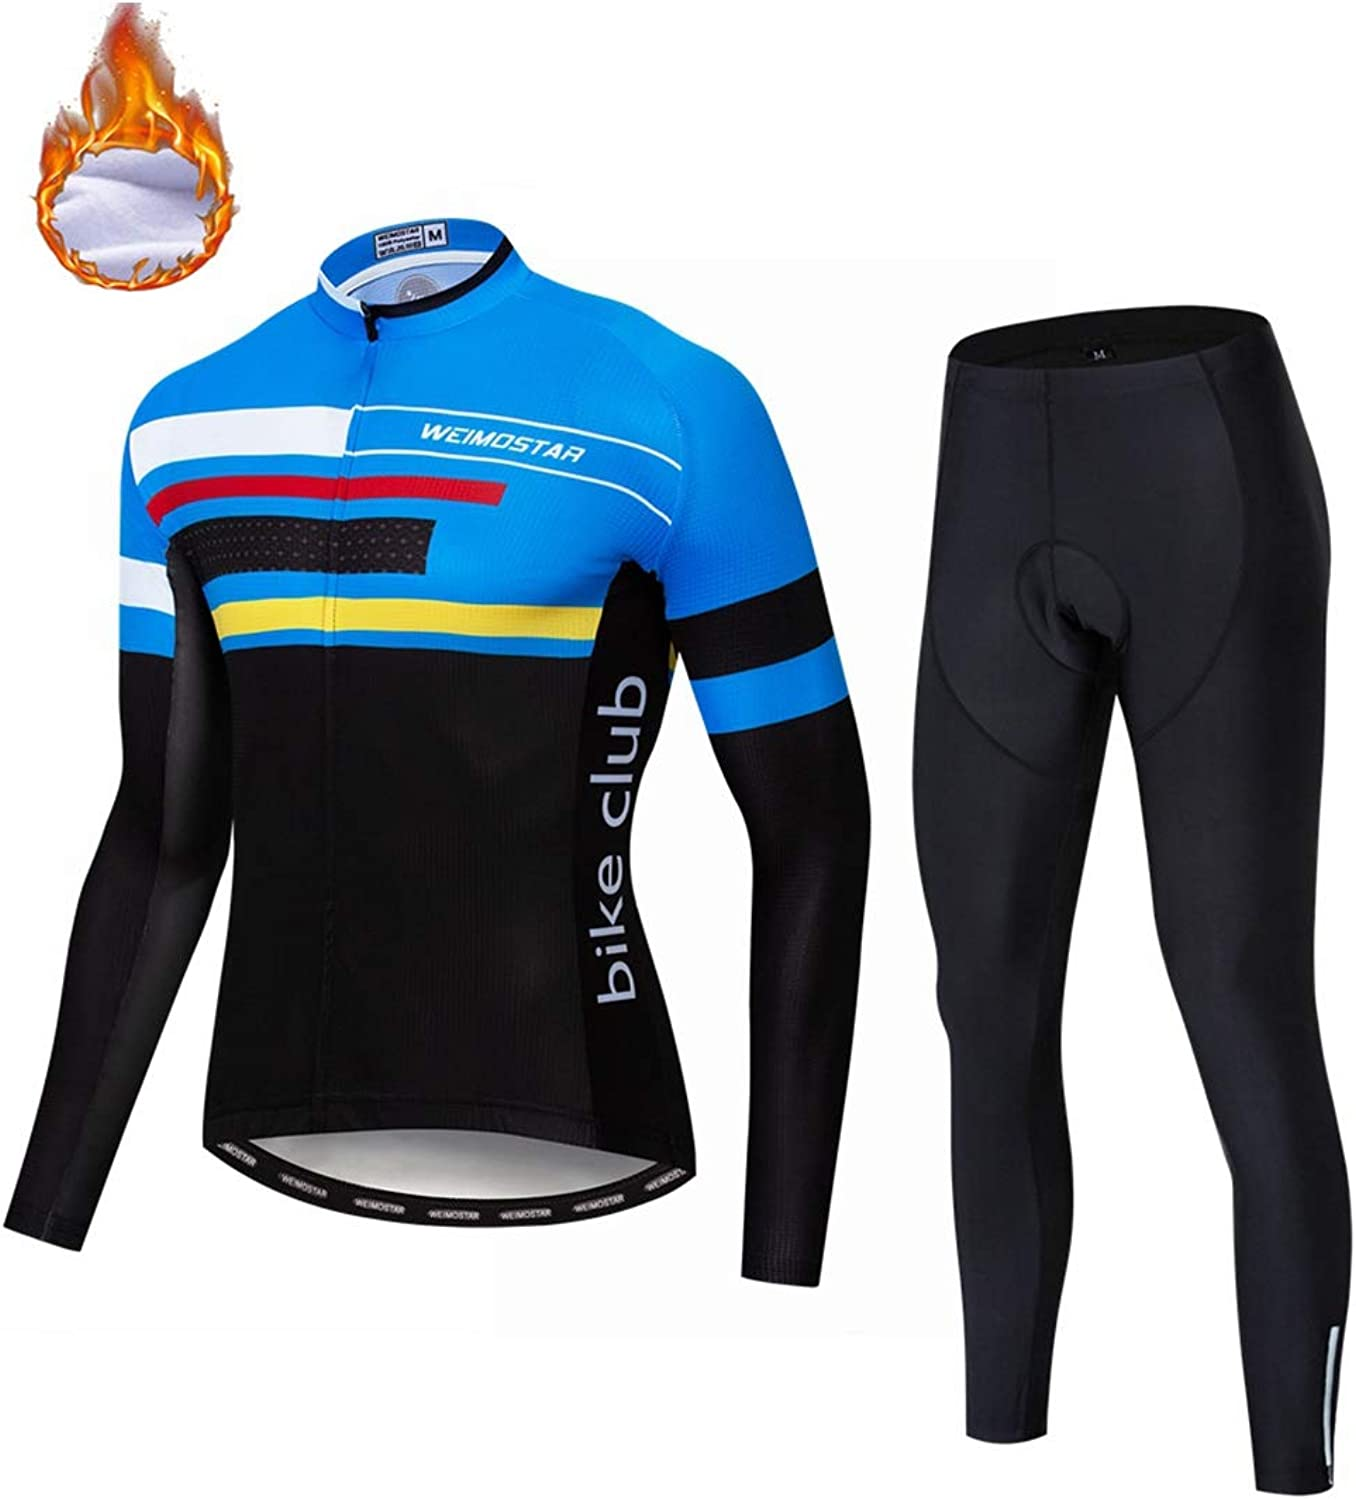 Weimomonkey Men's Cycling Clothing Set Long Sleeve Windproof Cycling Jersey Jacket 3D Padded Pants